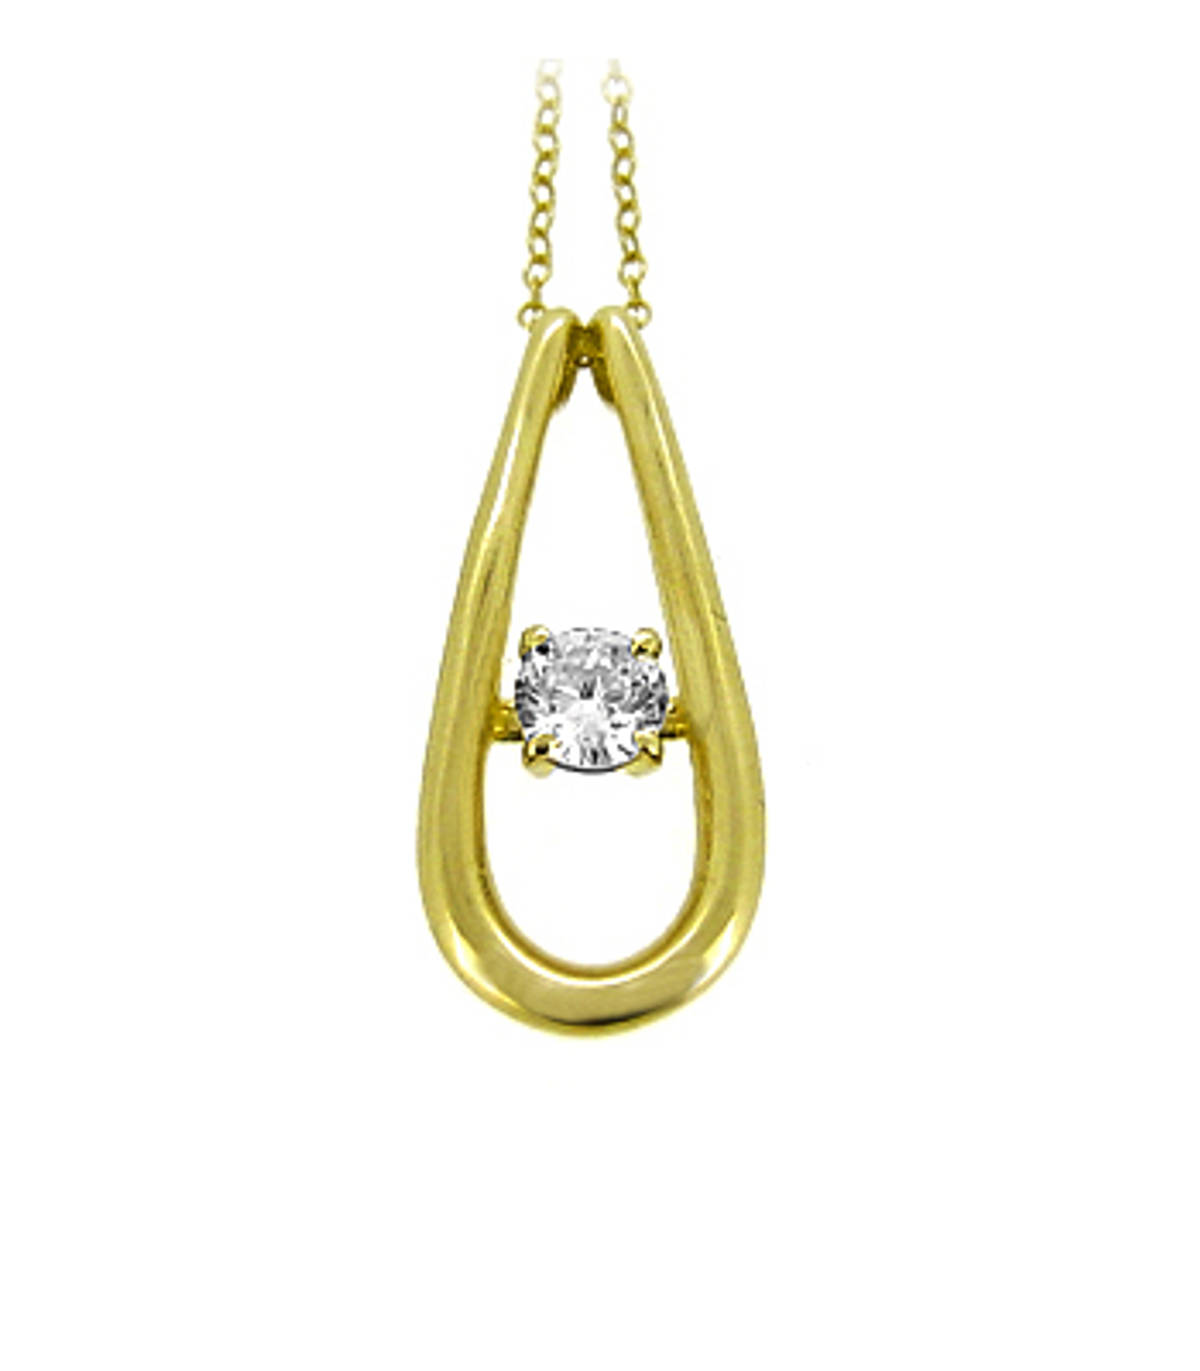 """9k yellow gold CZ pearshape pendant on 9k yellow gold 18"""" chain Metal: 9k yellow gold 9k yellow gold 18"""" chain Length  2.6cm  Width  1.1cm Made in Ireland"""